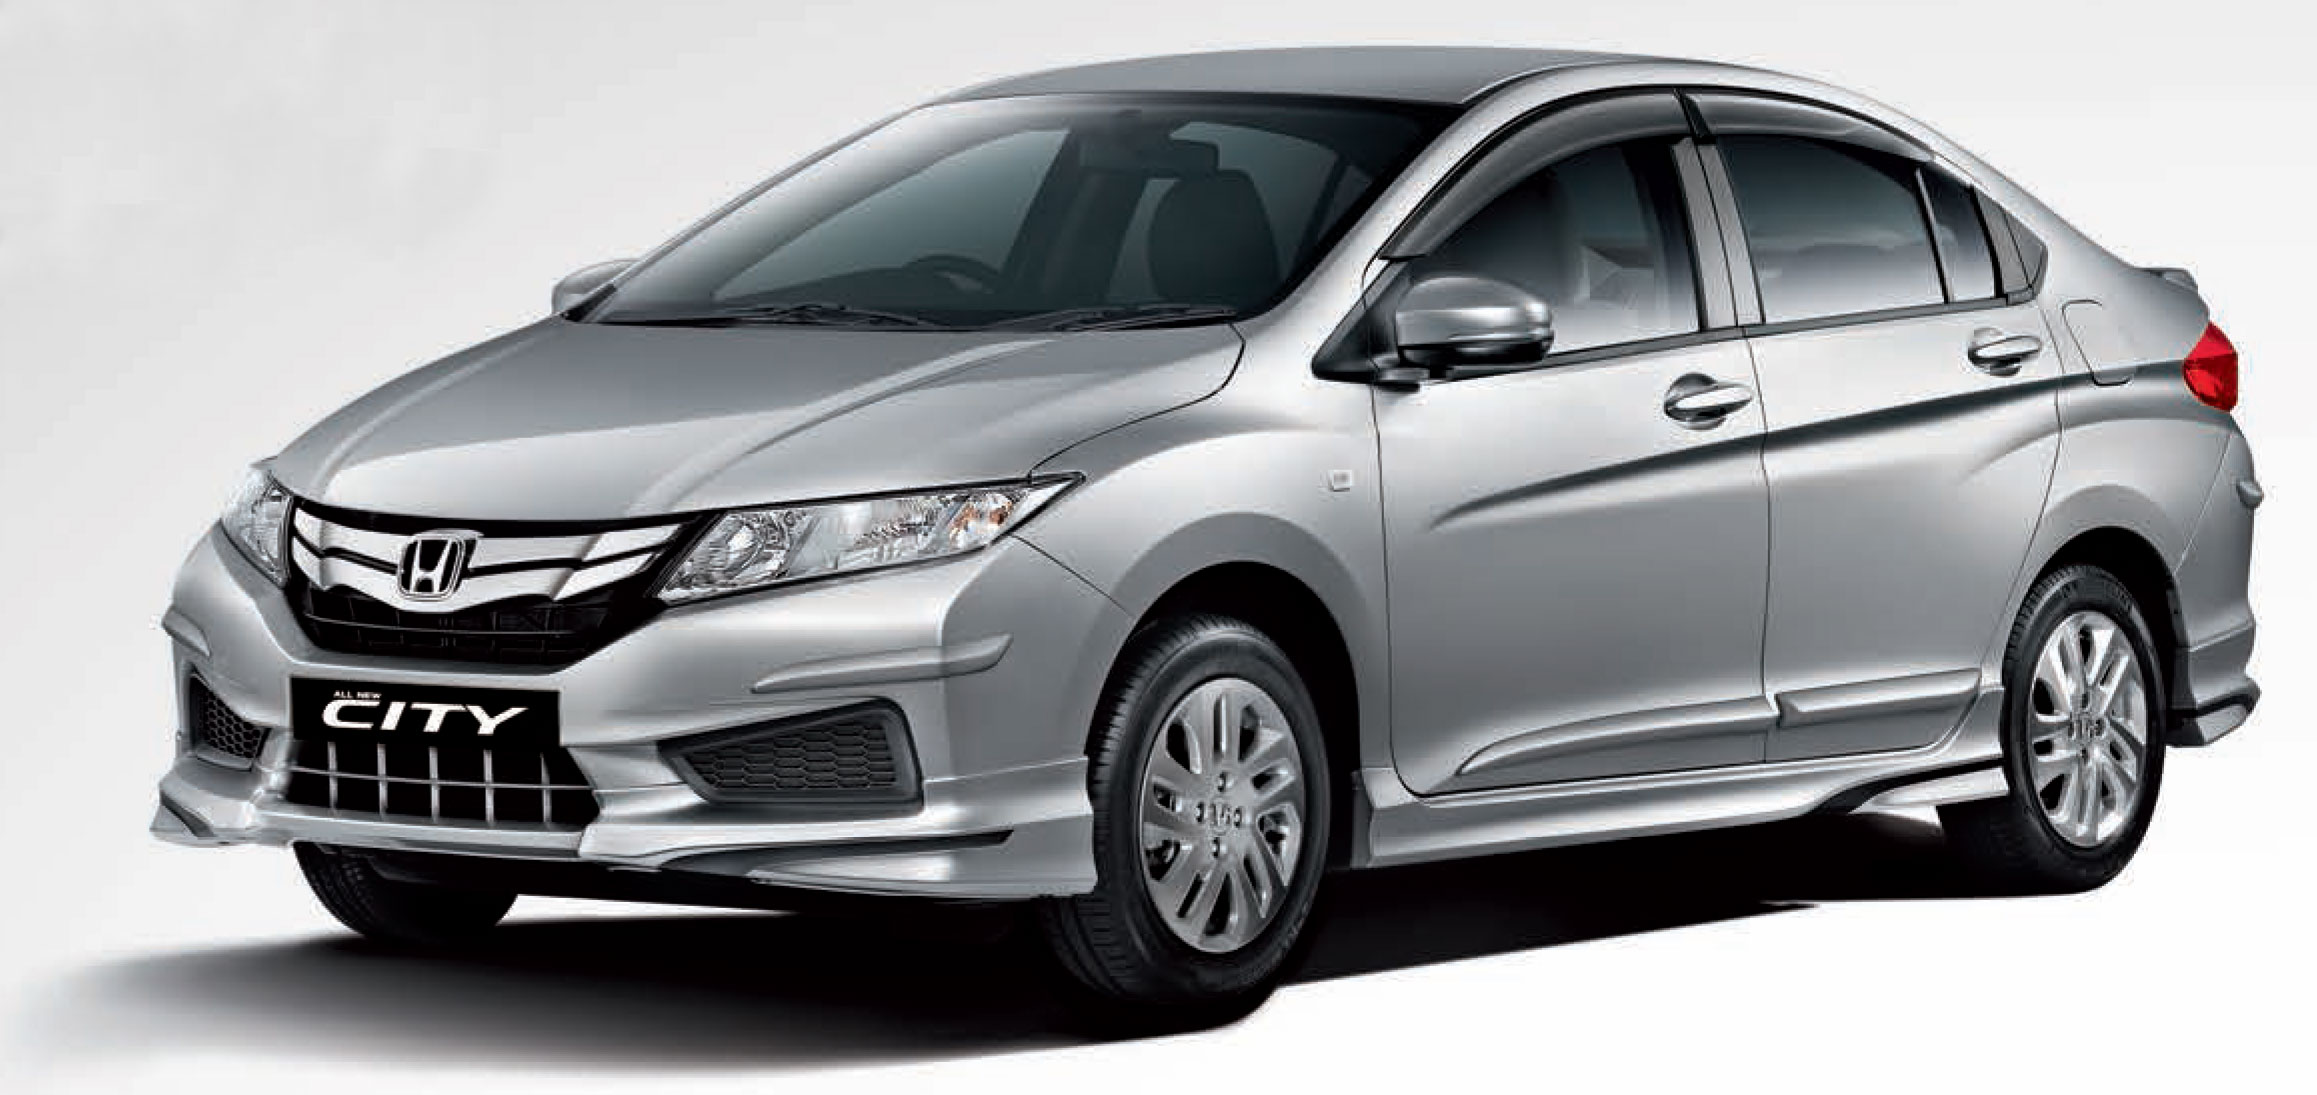 2014 Honda City Launched In India New Details Paul Tan